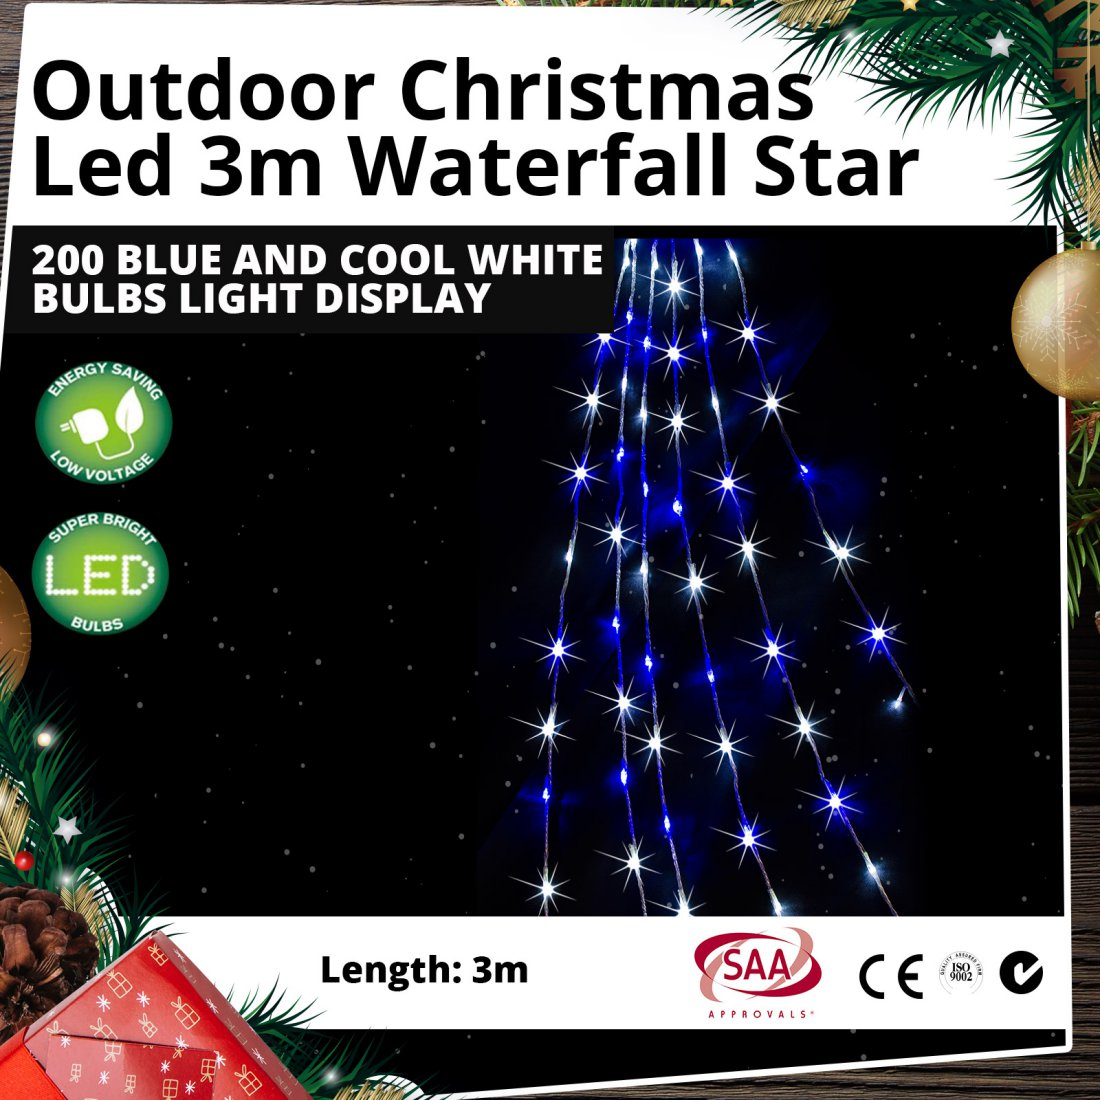 Outdoor LED 3m Waterfall Star 200 Blue and Cool White Bulbs Christmas Light Display